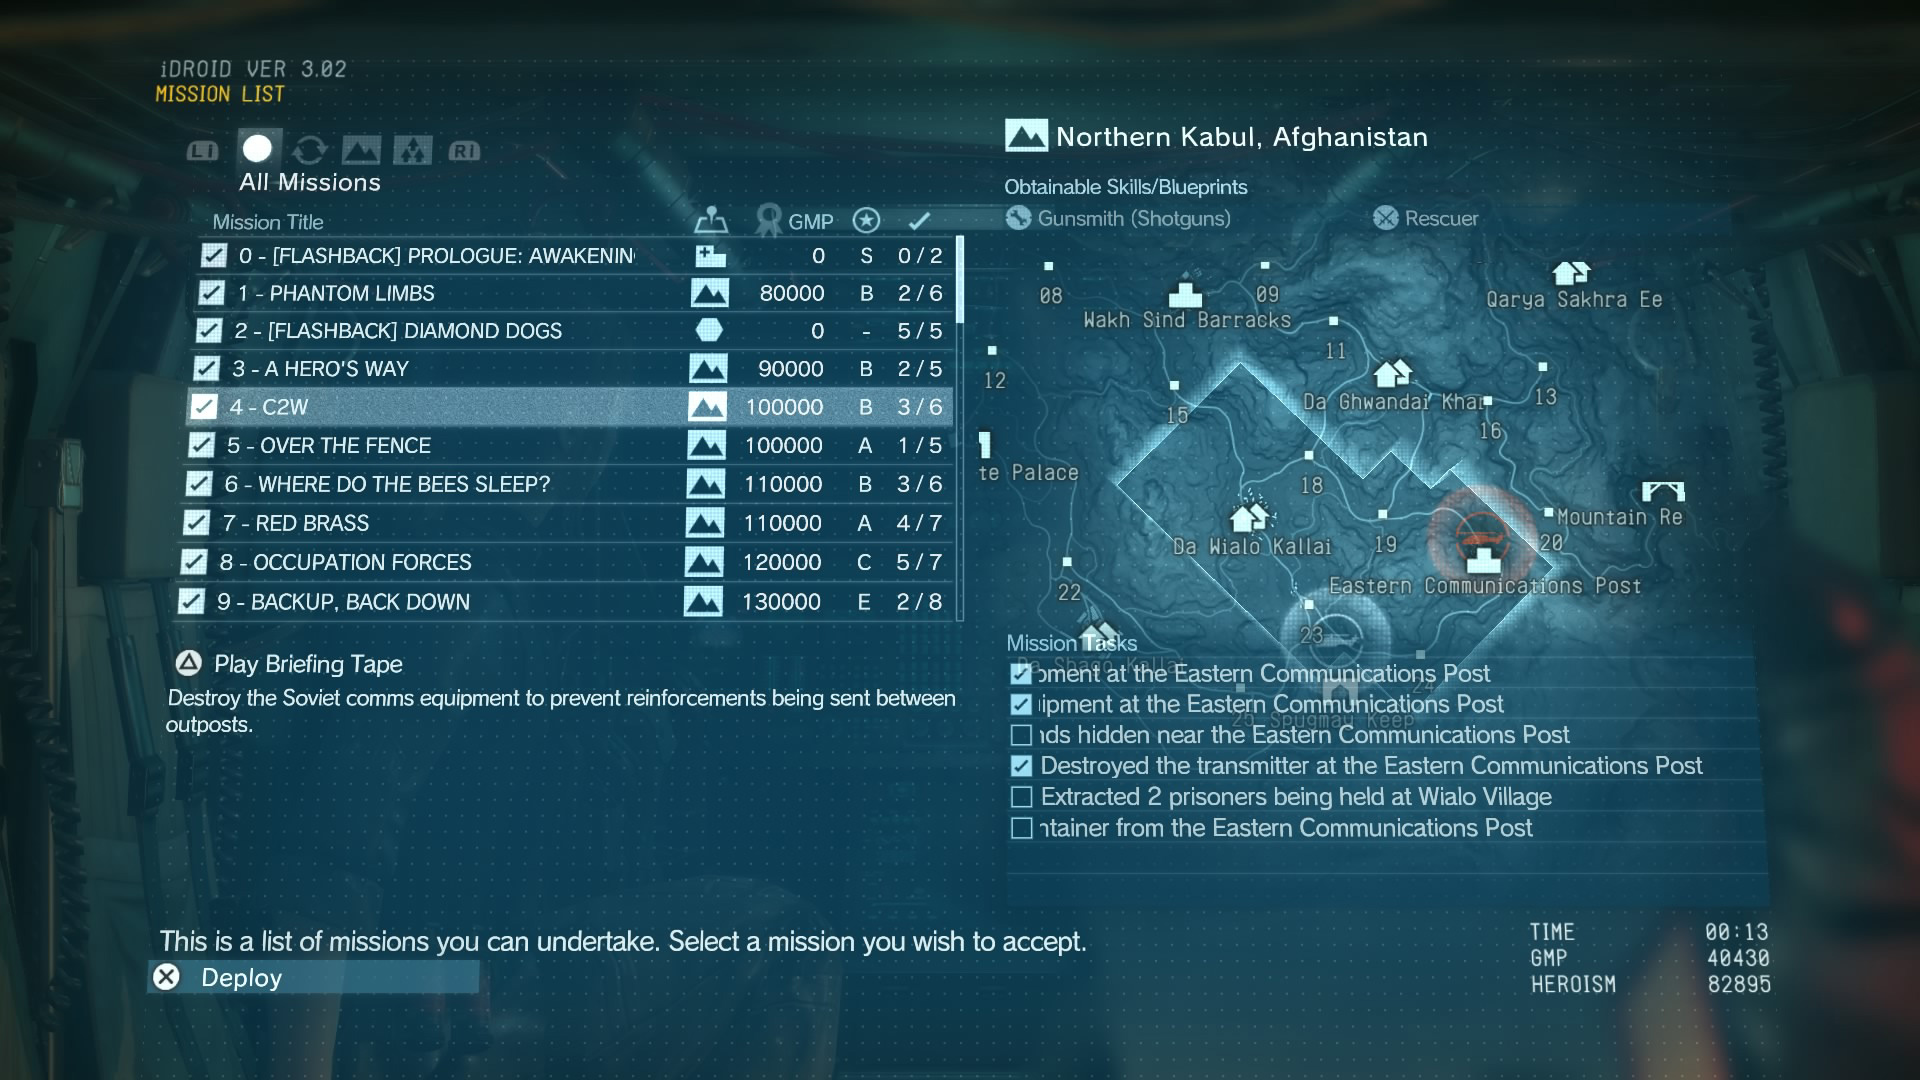 Metal-Gear-Solid-V-The-Phantom-Pain-Mission-4-C2W